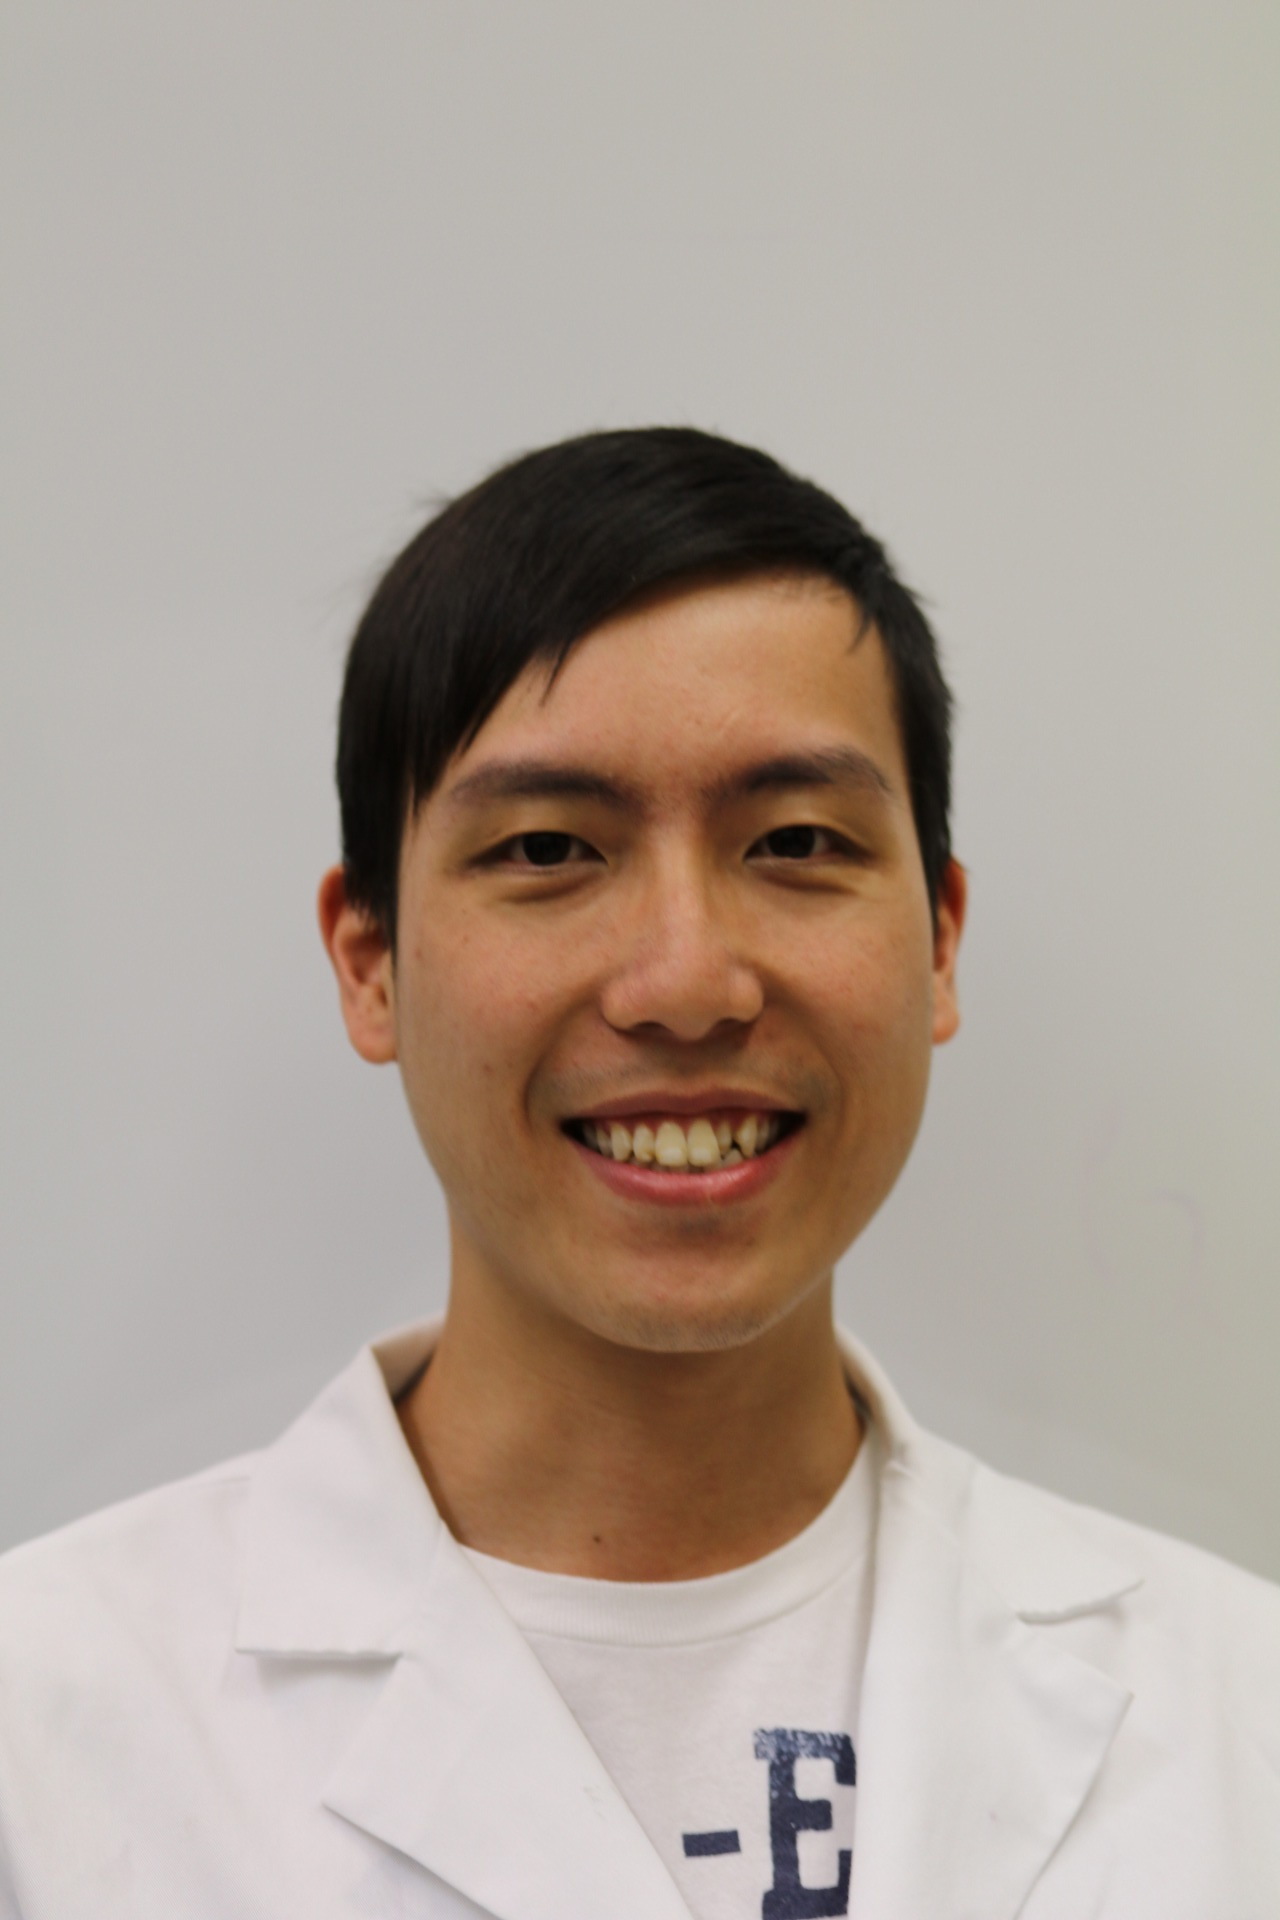 Vincent Mui   B.S. Applied Chemistry (City University of Hong Kong) 2013. M.Phil in Chemistry (The Graduate Center, CUNY) 2018.  Vincent is an M.Phil graduate at The Graduate Center, CUNY, from the inorganic sub-discipline. He joined Prof. Burton-Pye's group in April 2018 working on luminescent nanomaterials.   Current research:  Functionalization of persistent luminescent nanoparticles with lanthanide complexes as a novel imaging agents.   Previous research:  Catalytic conversion of polysaccharide in food waste to platform molecules. Medicinal applications of organometallic gold compounds.